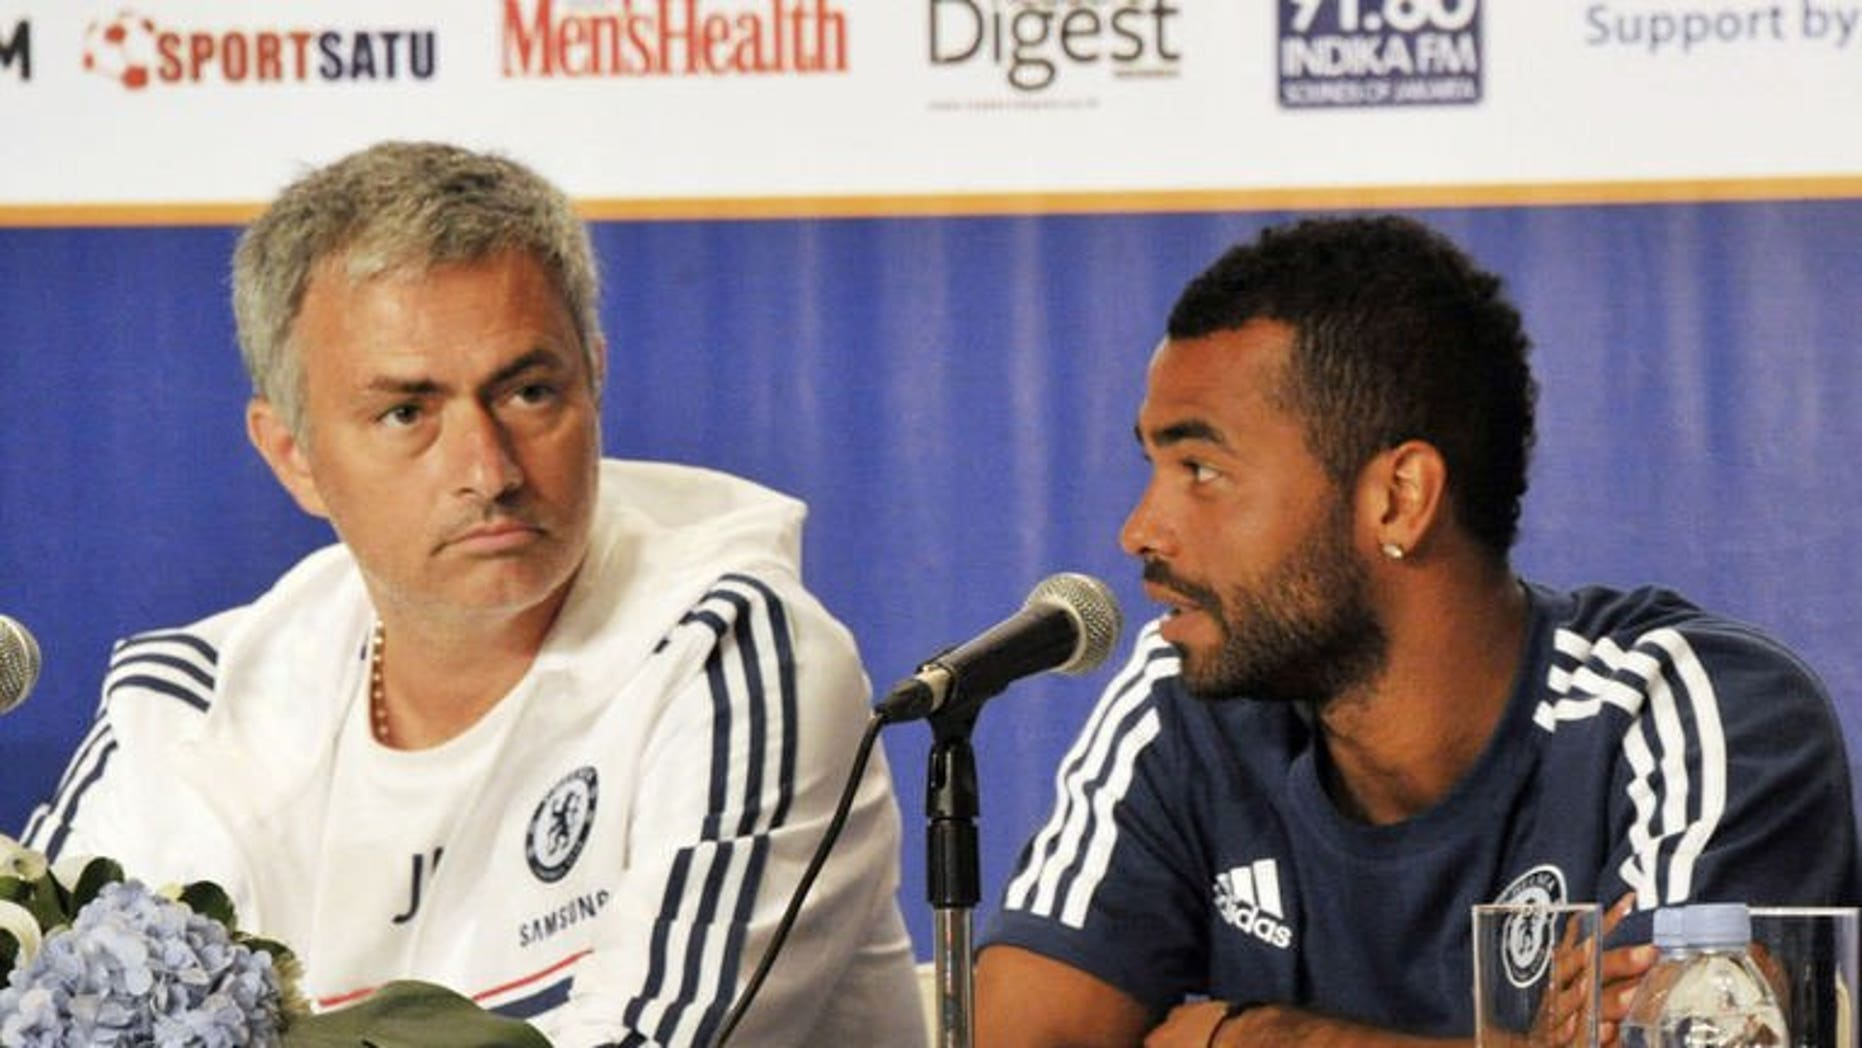 Chelsea football club manager Jose Mourinho (L) listens as player Ashley Cole (R) speaks during a press conference at a hotel in Jakarta on July 23, 2013. Chelsea turned on the style in an 8-1 rout of Indonesia All-Stars Thursday as they completed their Asian tour with a 100 percent record under returning manager Mourinho.